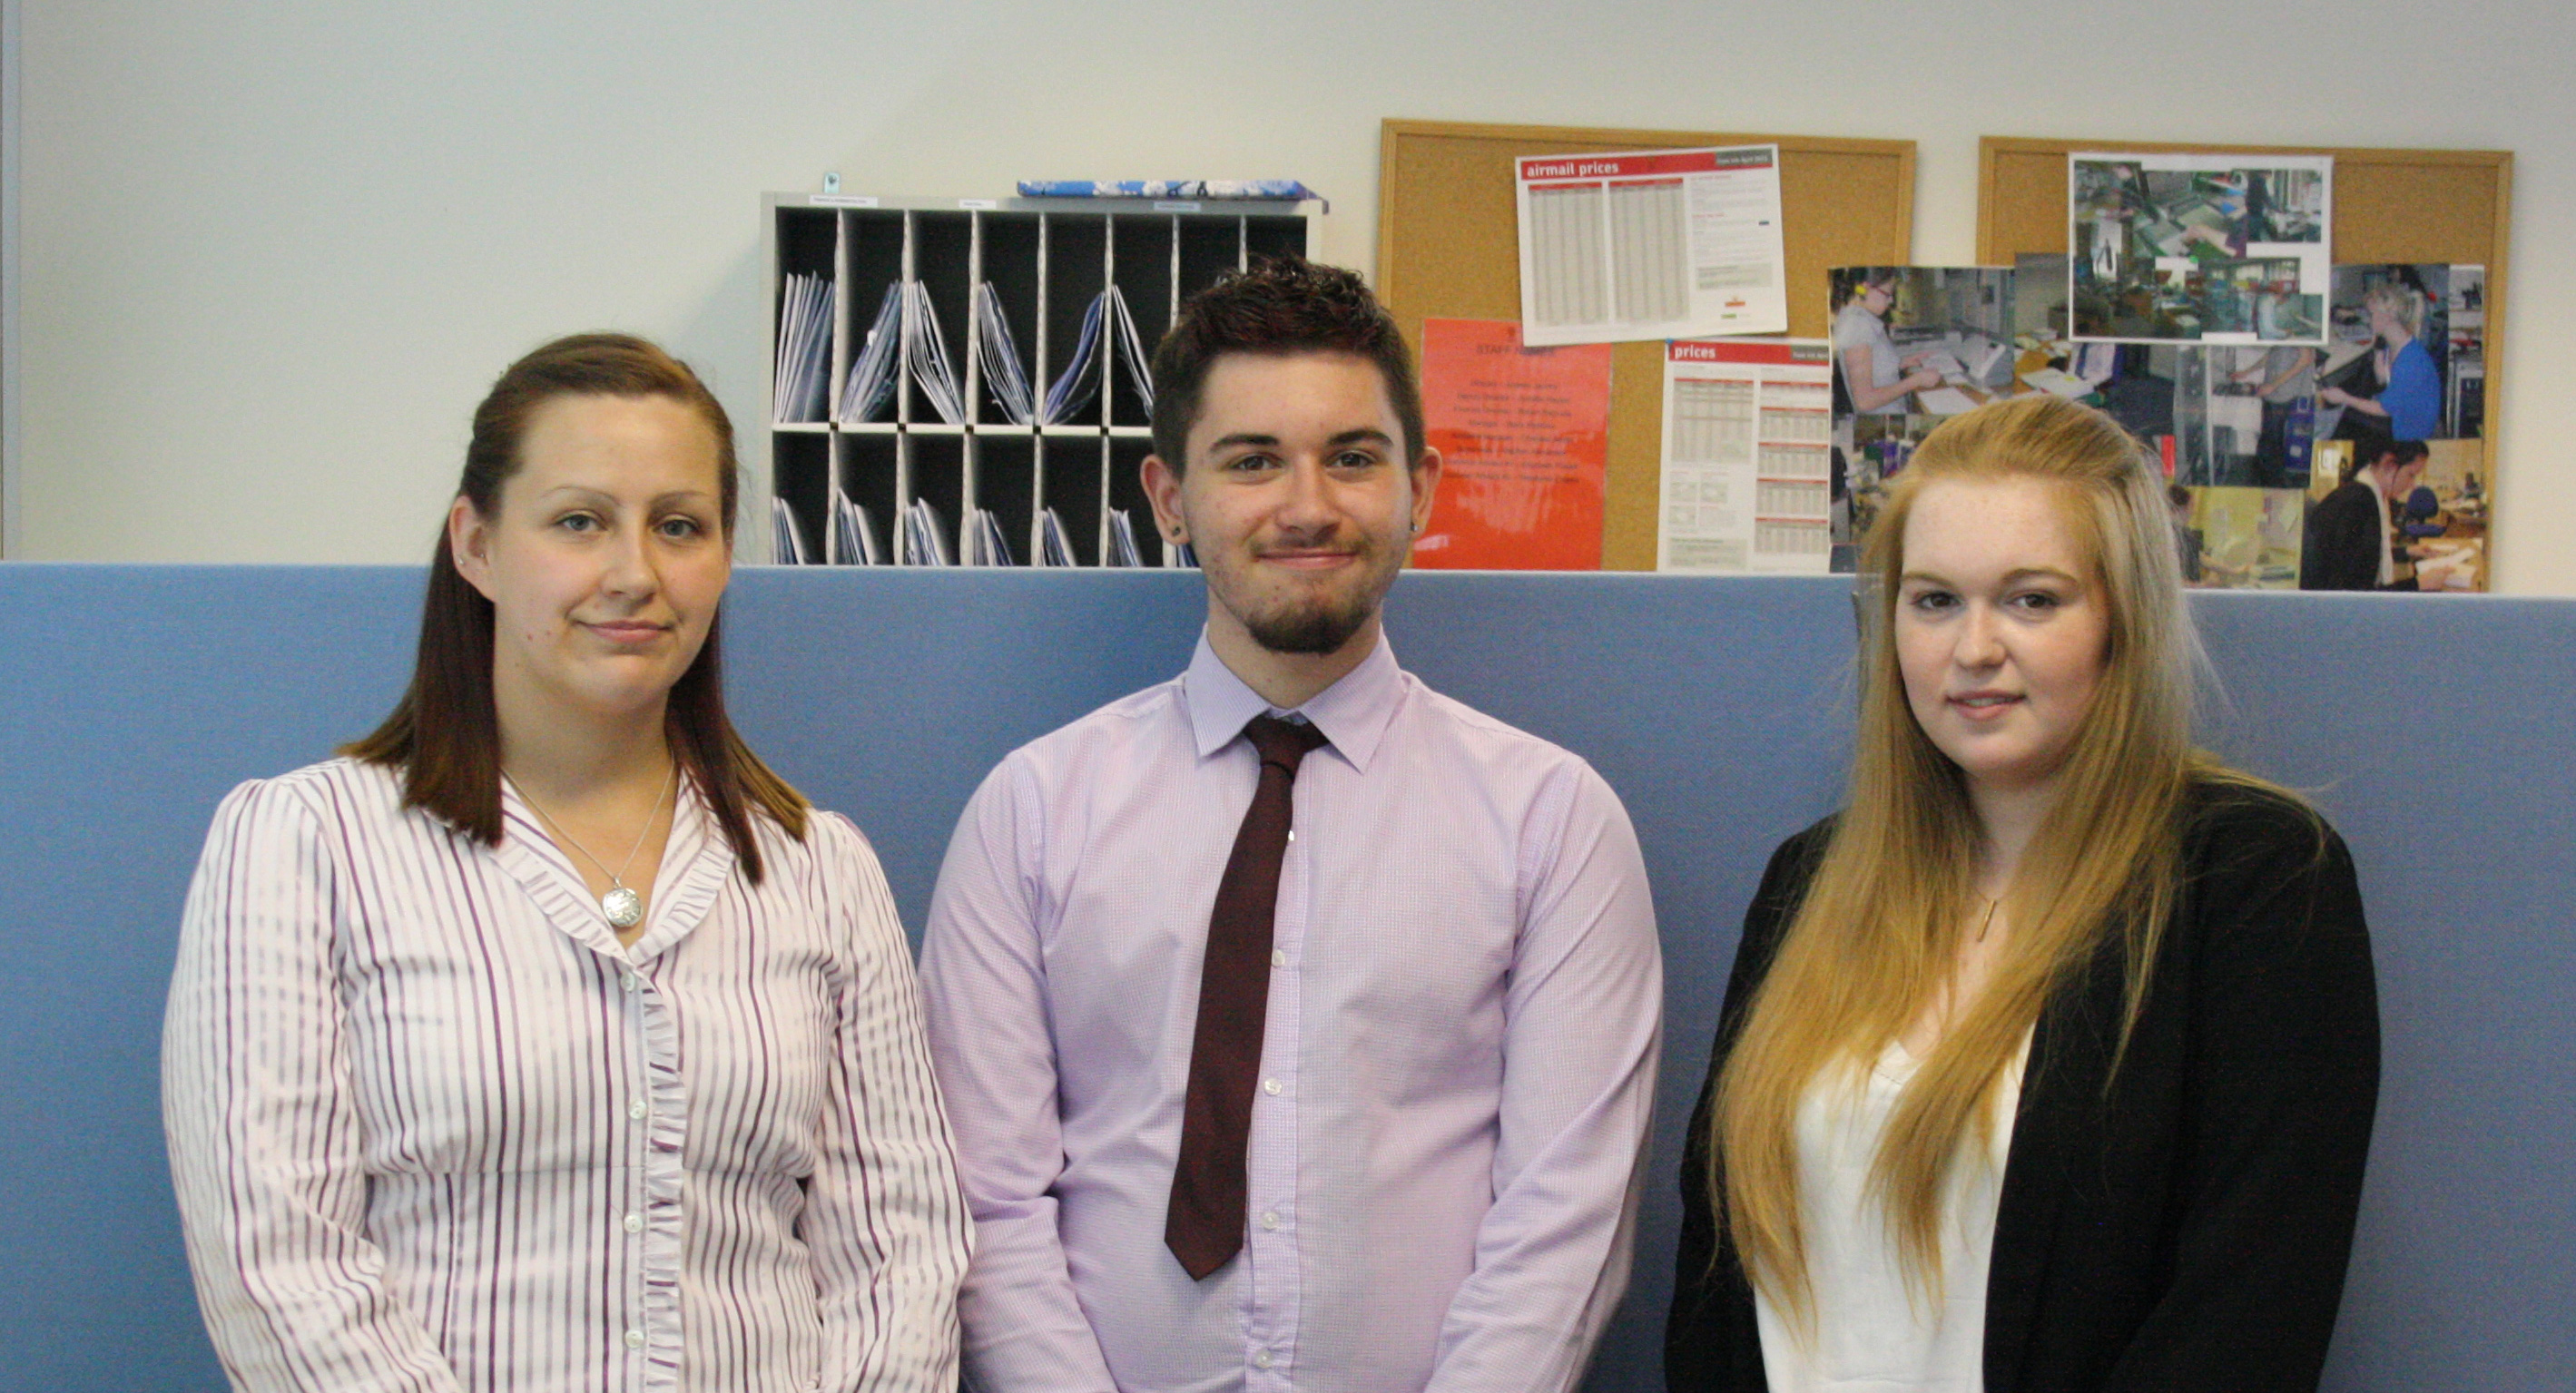 Students take part in employer engagement opportunity